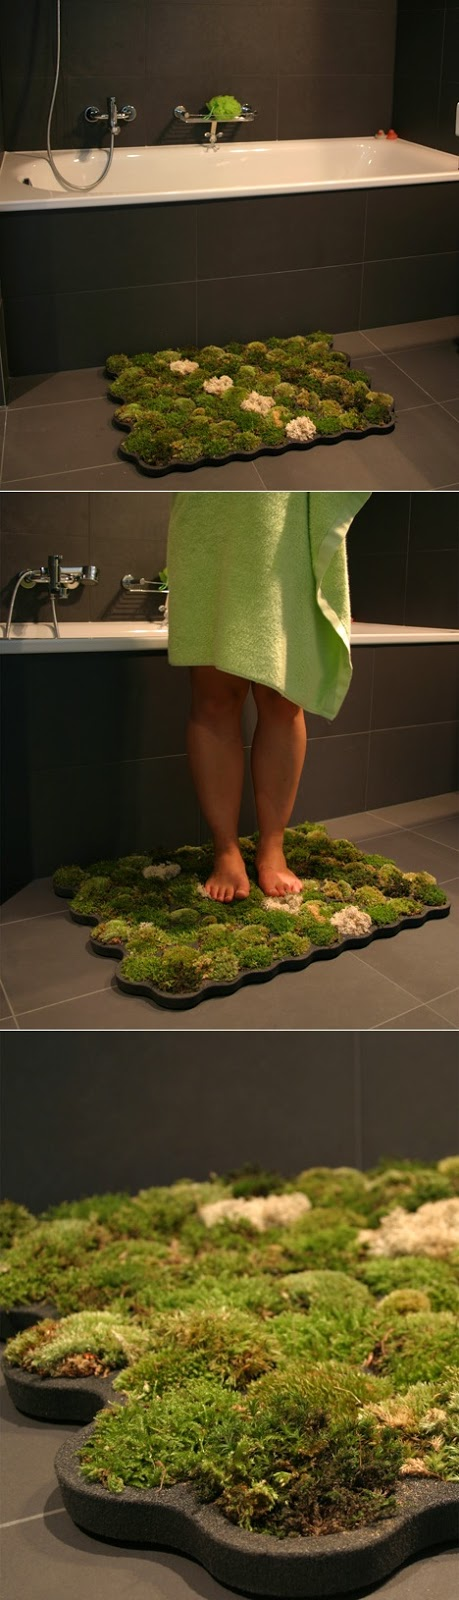 bathmat made of moss